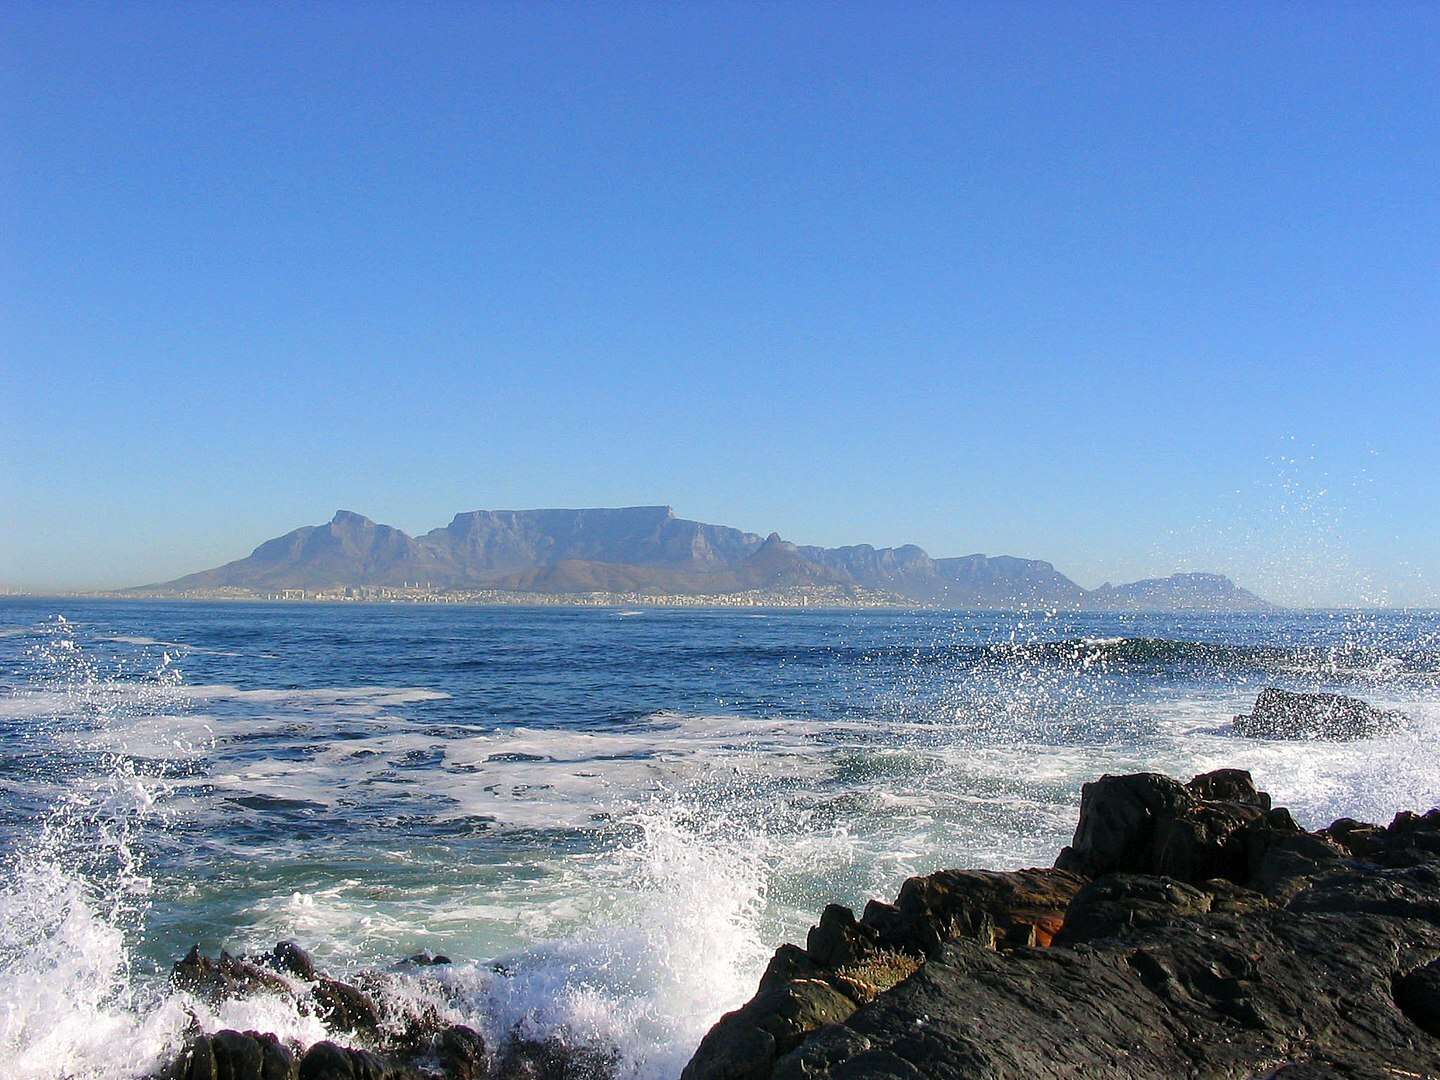 Robben island coast with a view of Table Mountain